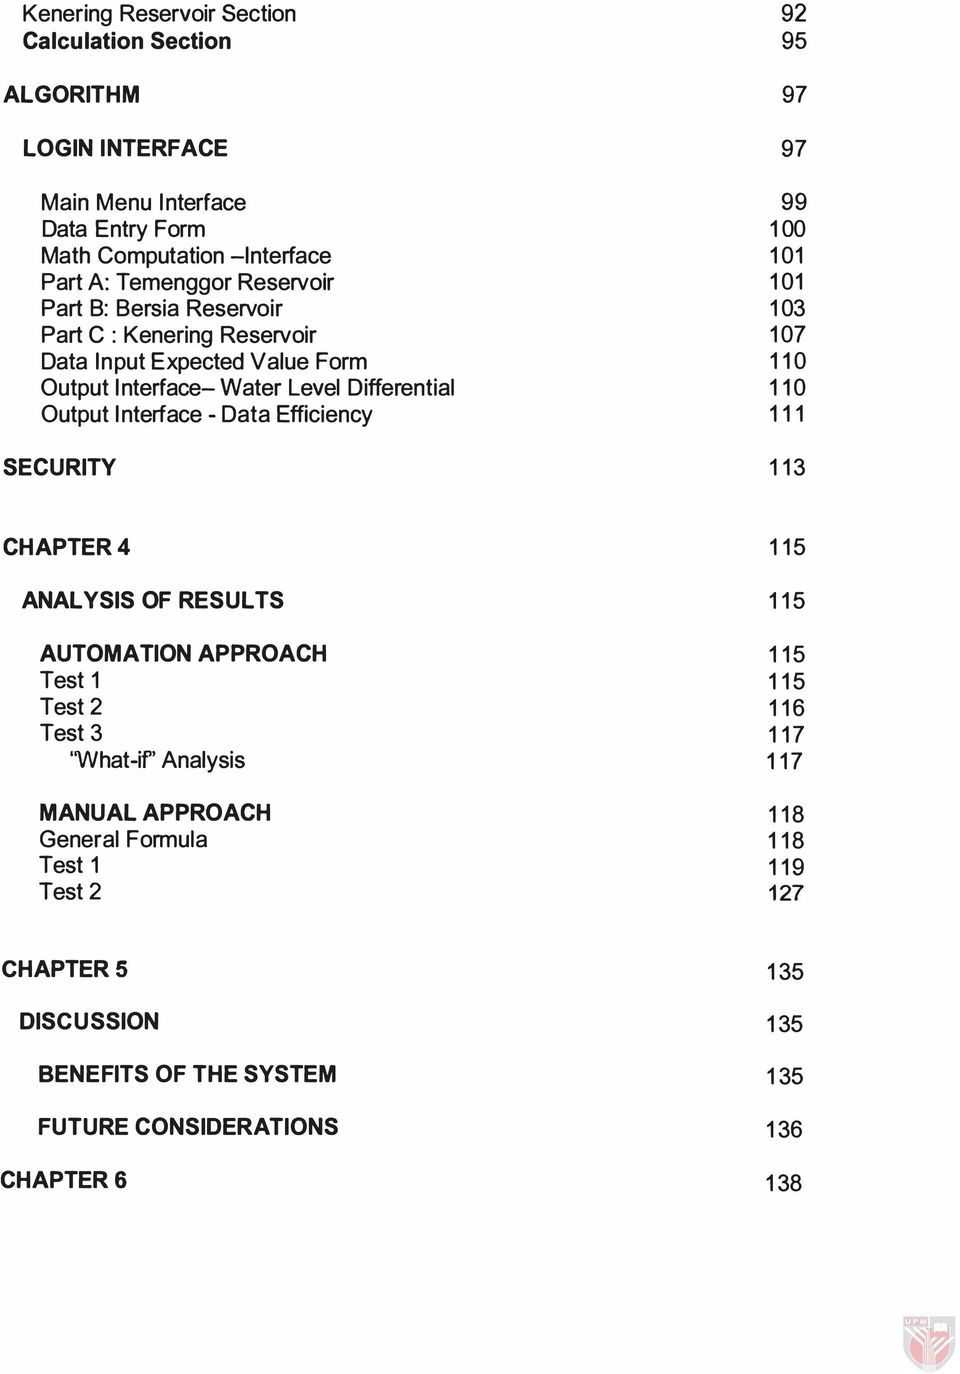 SECURITY 92 95 97 97 99 100 101 101 103 107 110 110 111 113 CHAPTER 4 ANAL YSIS OF RESULTS AUTOMATION APPROACH Test 1 Test 2 Test 3 'What-if' Analysis MANUAL